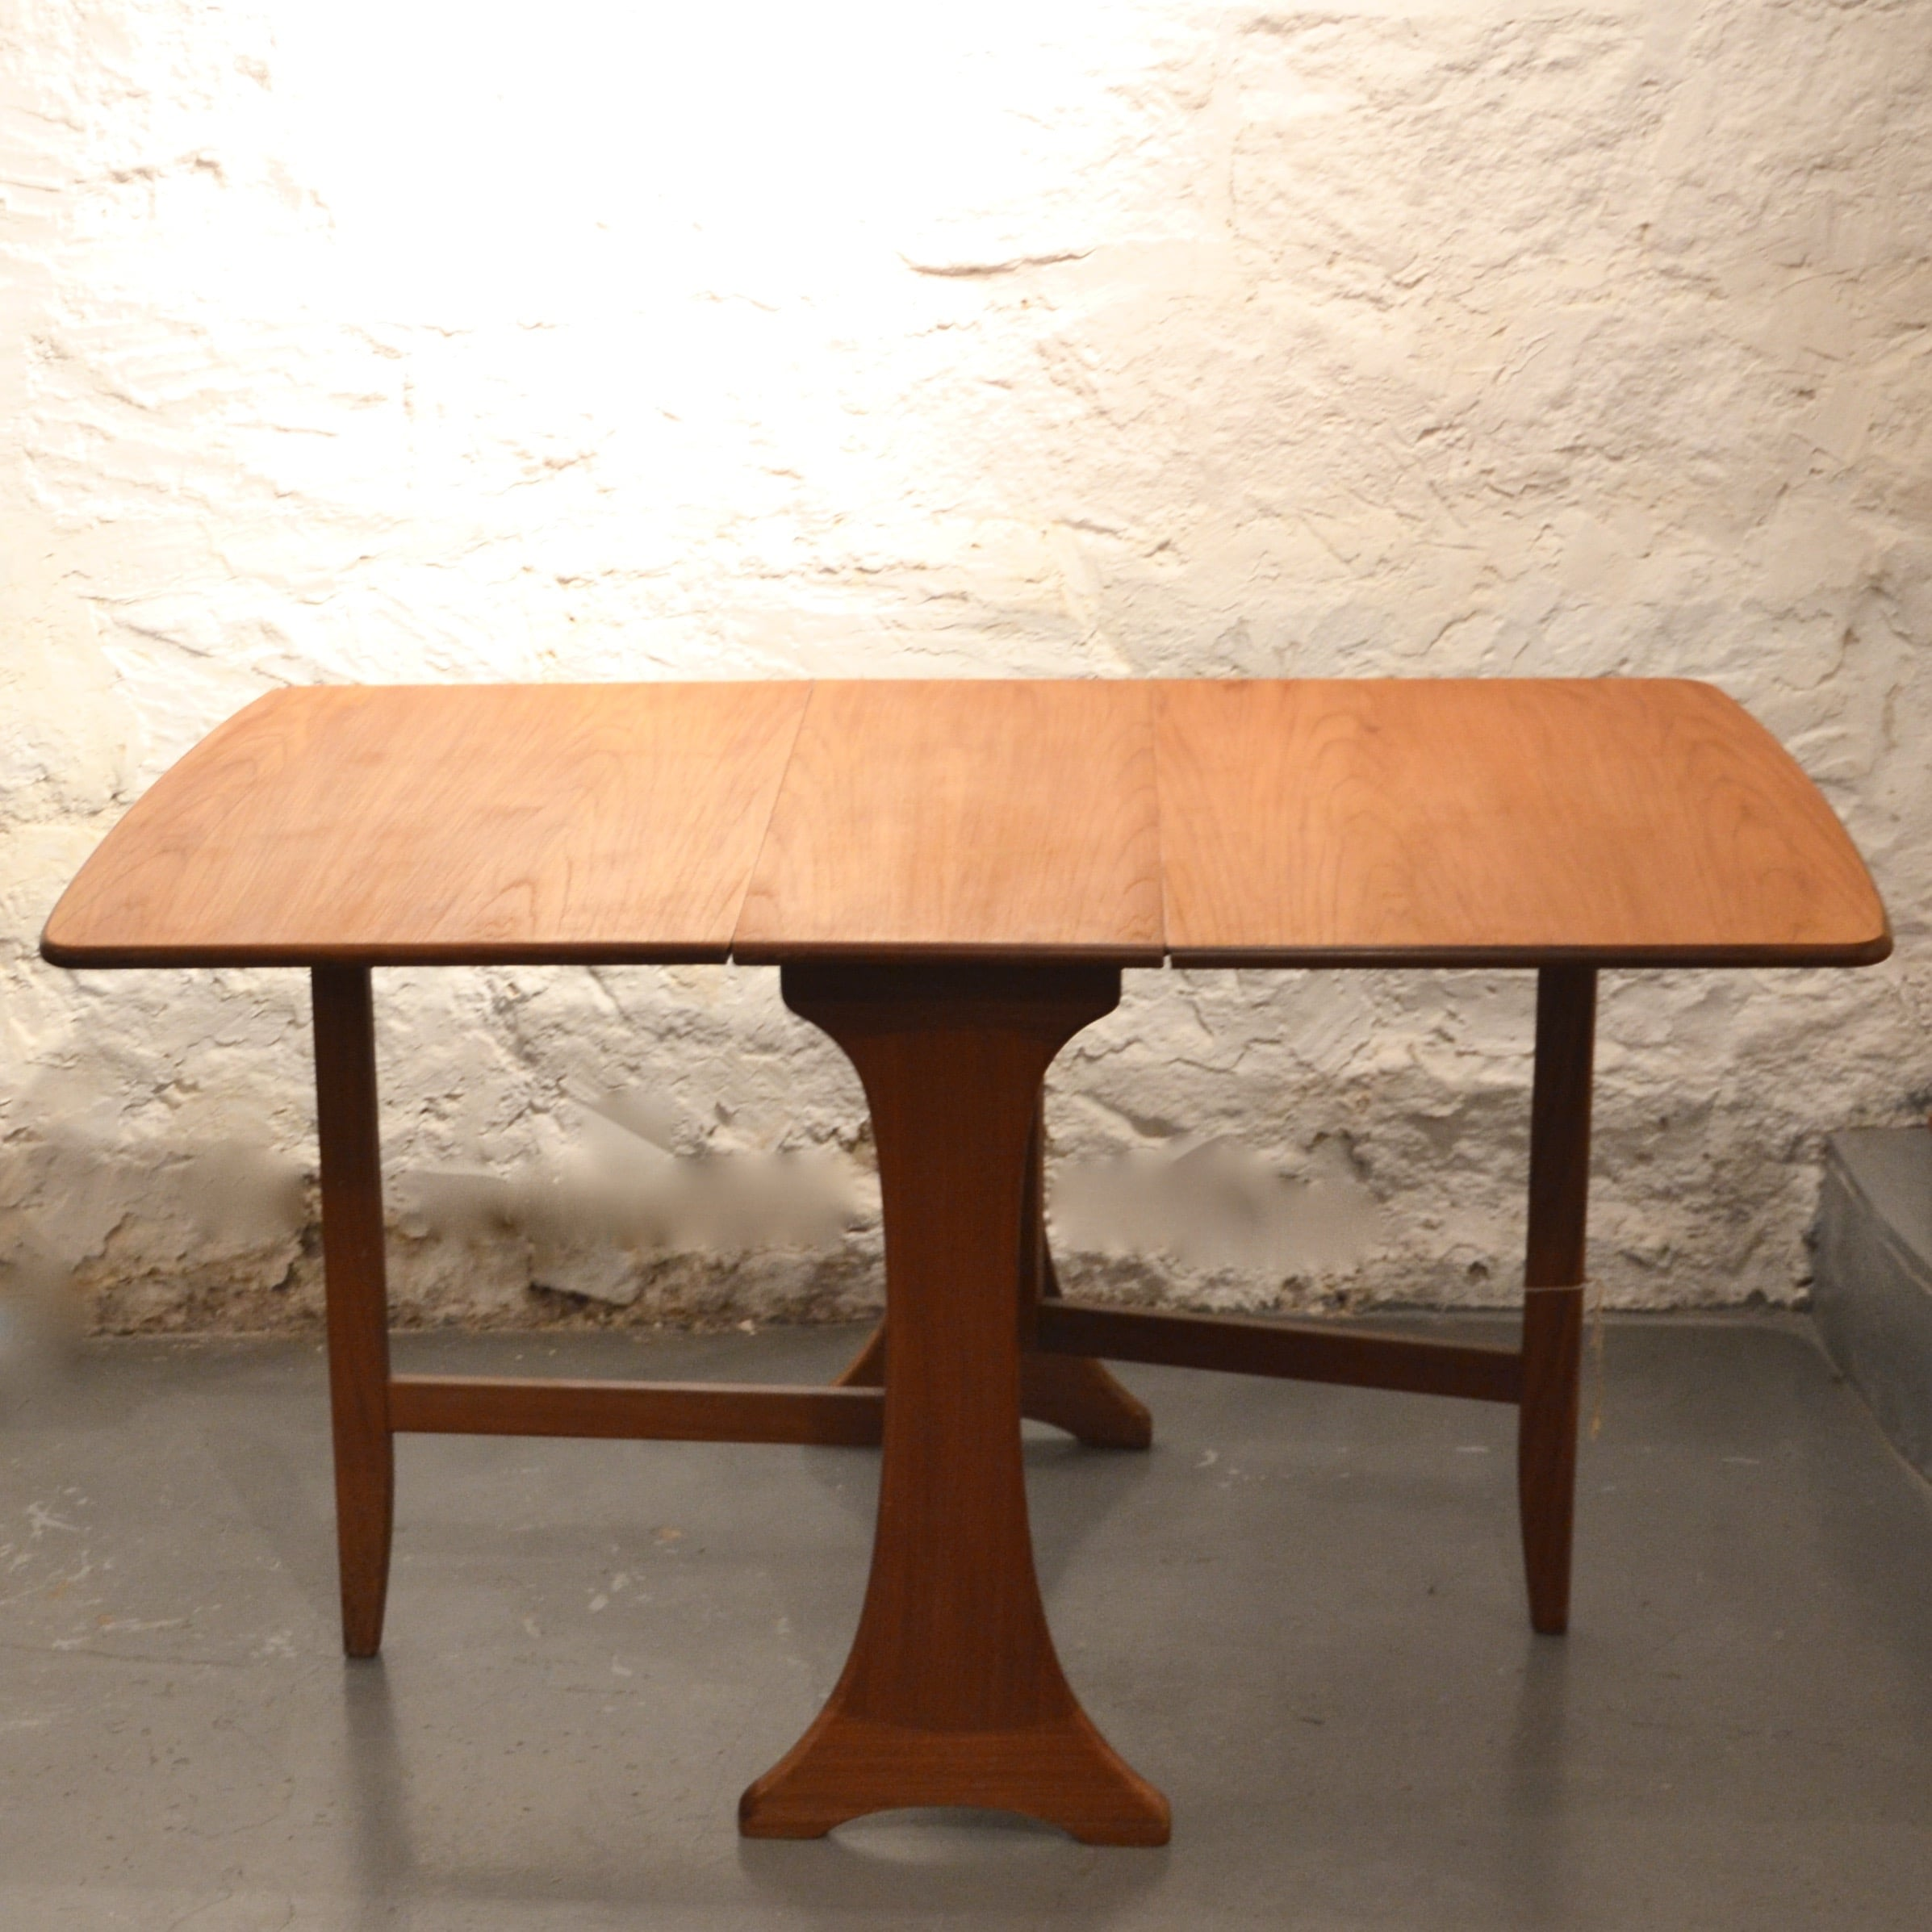 Table manger modulable scandinave bindies - Table a manger modulable ...